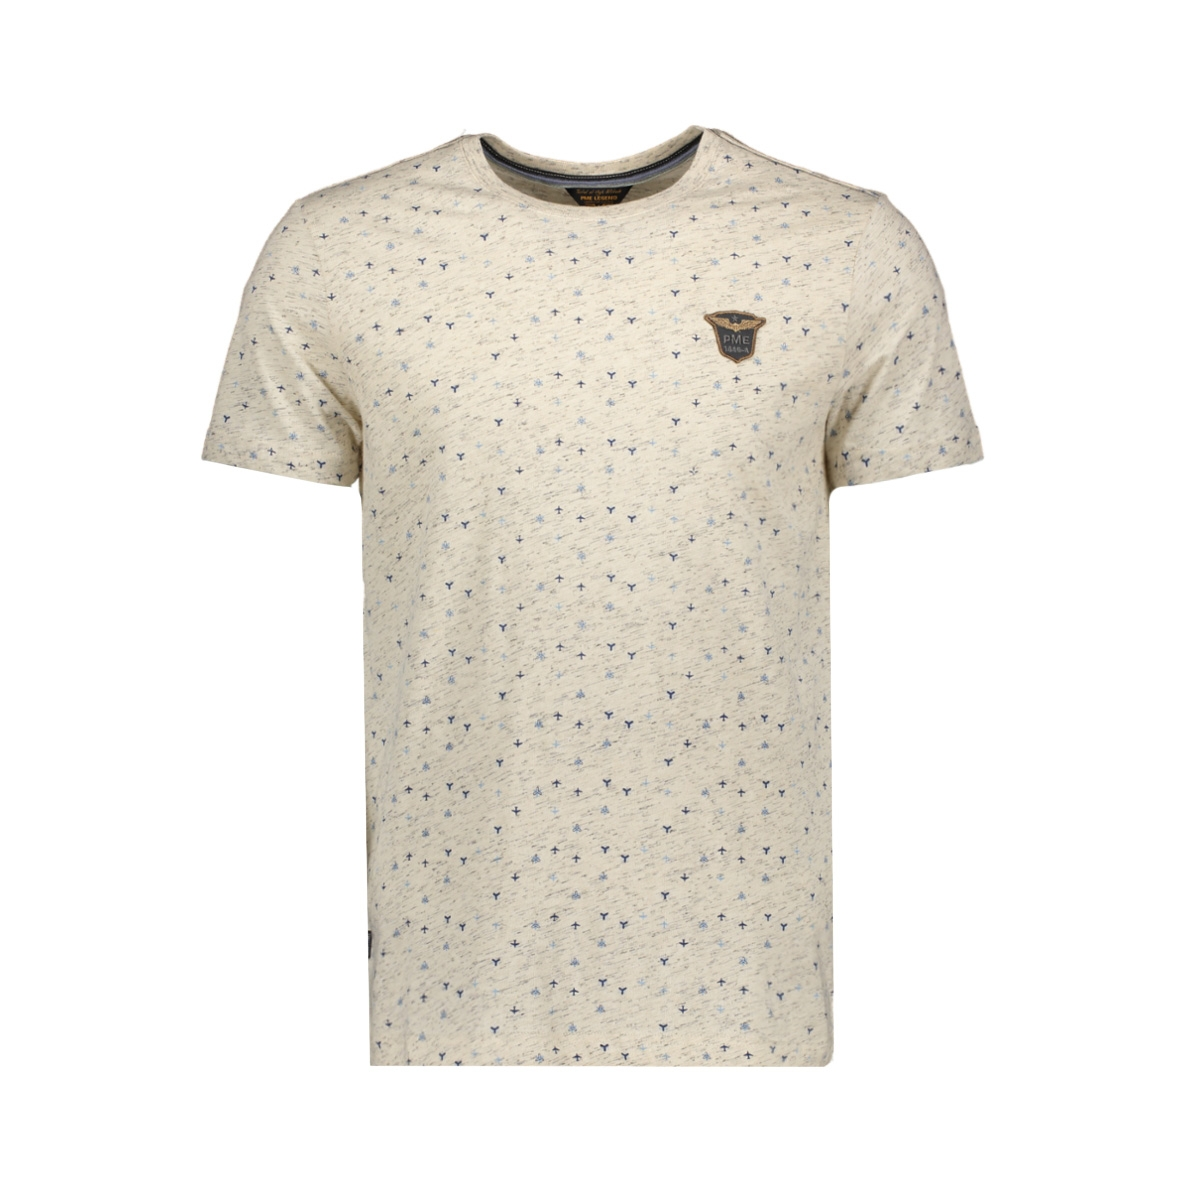 ptss191552 pme legend t-shirt 7013